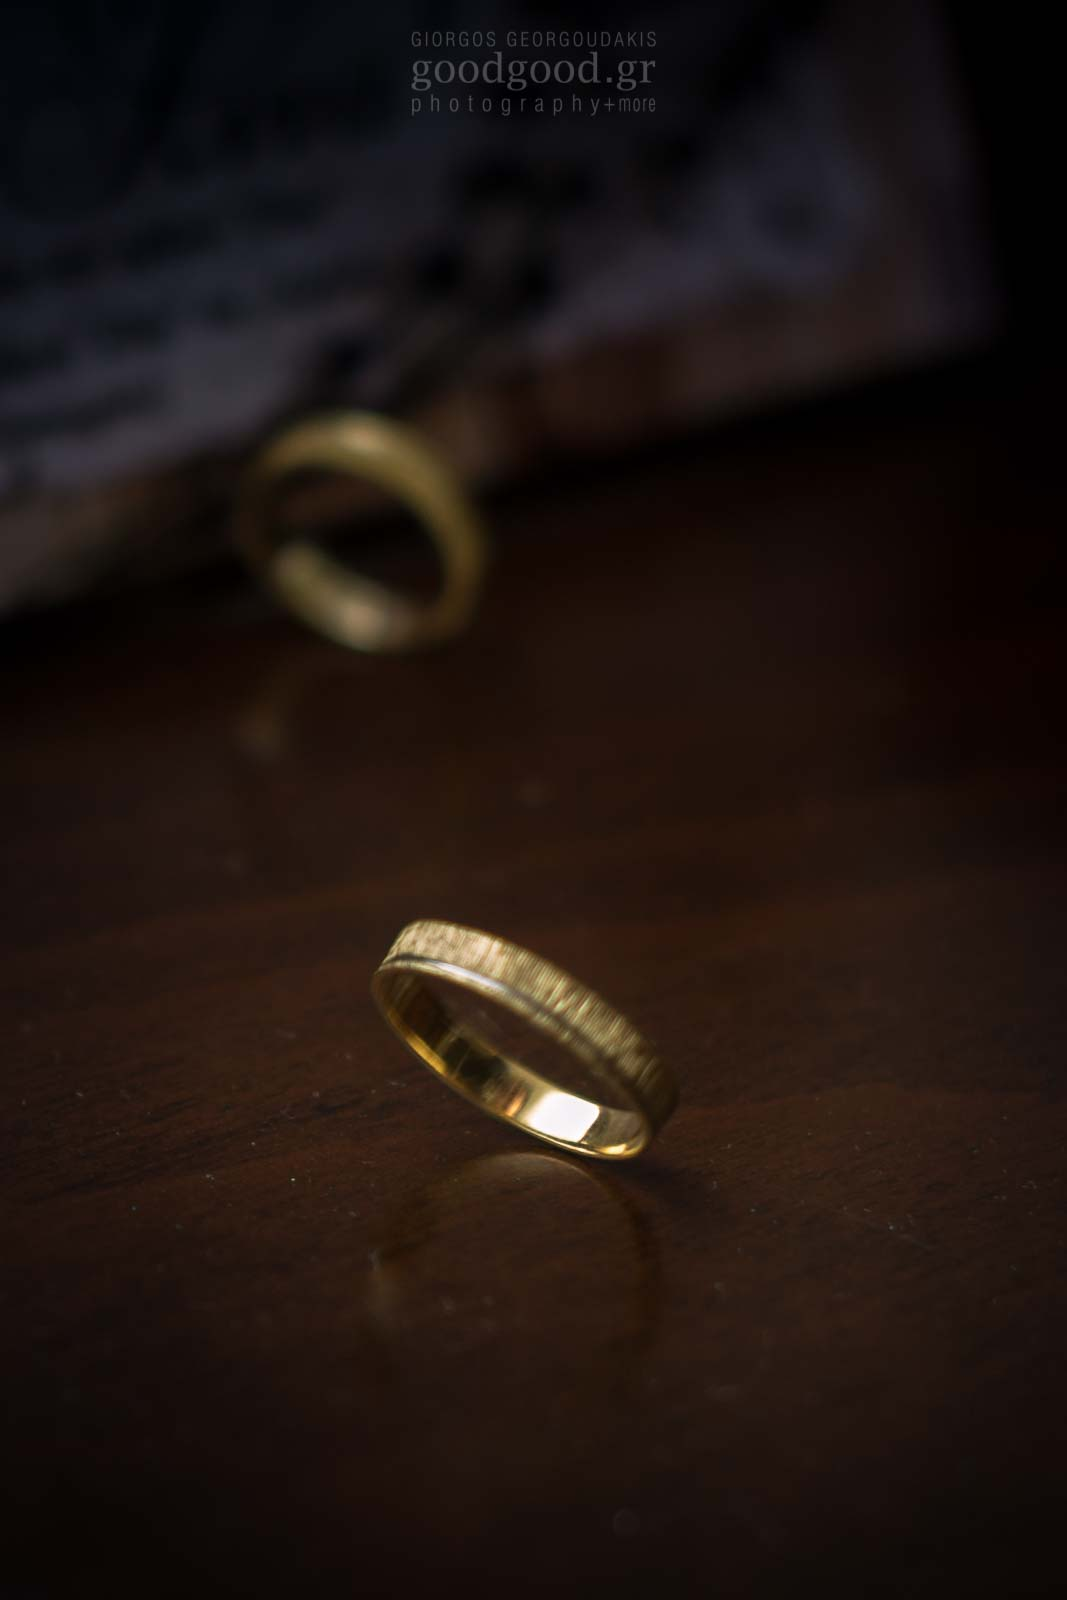 Wedding ring spinning around on a table